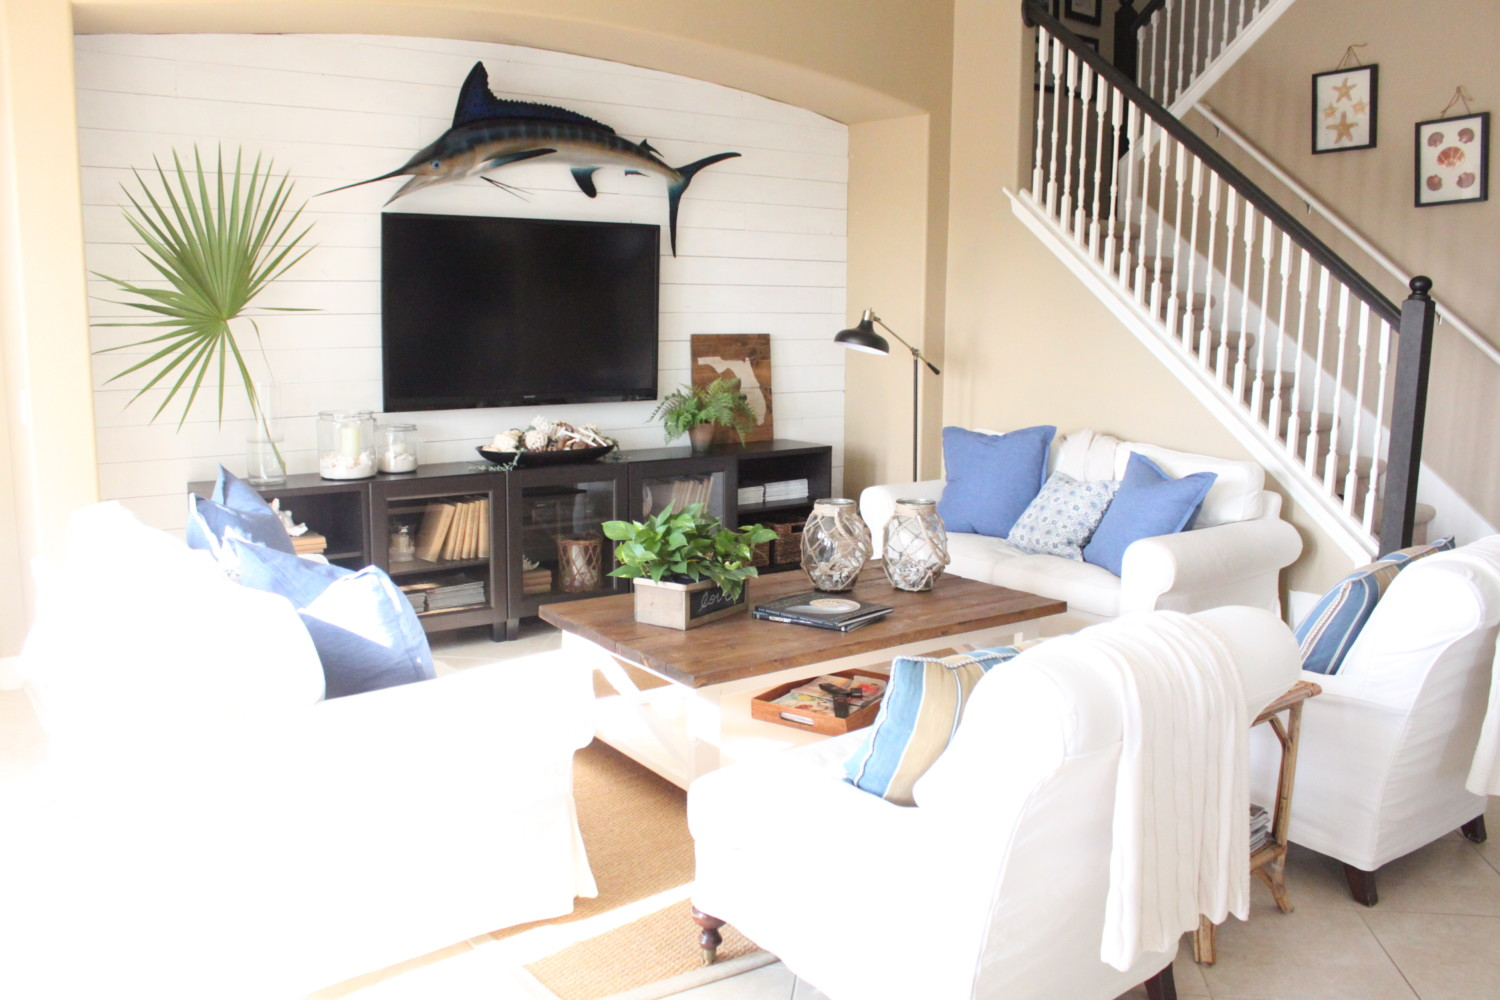 Living Room White Family Room blue and white family room the waterside home tour starfish all this month i have been sharing photos of our house updated for summer with today am back some photos